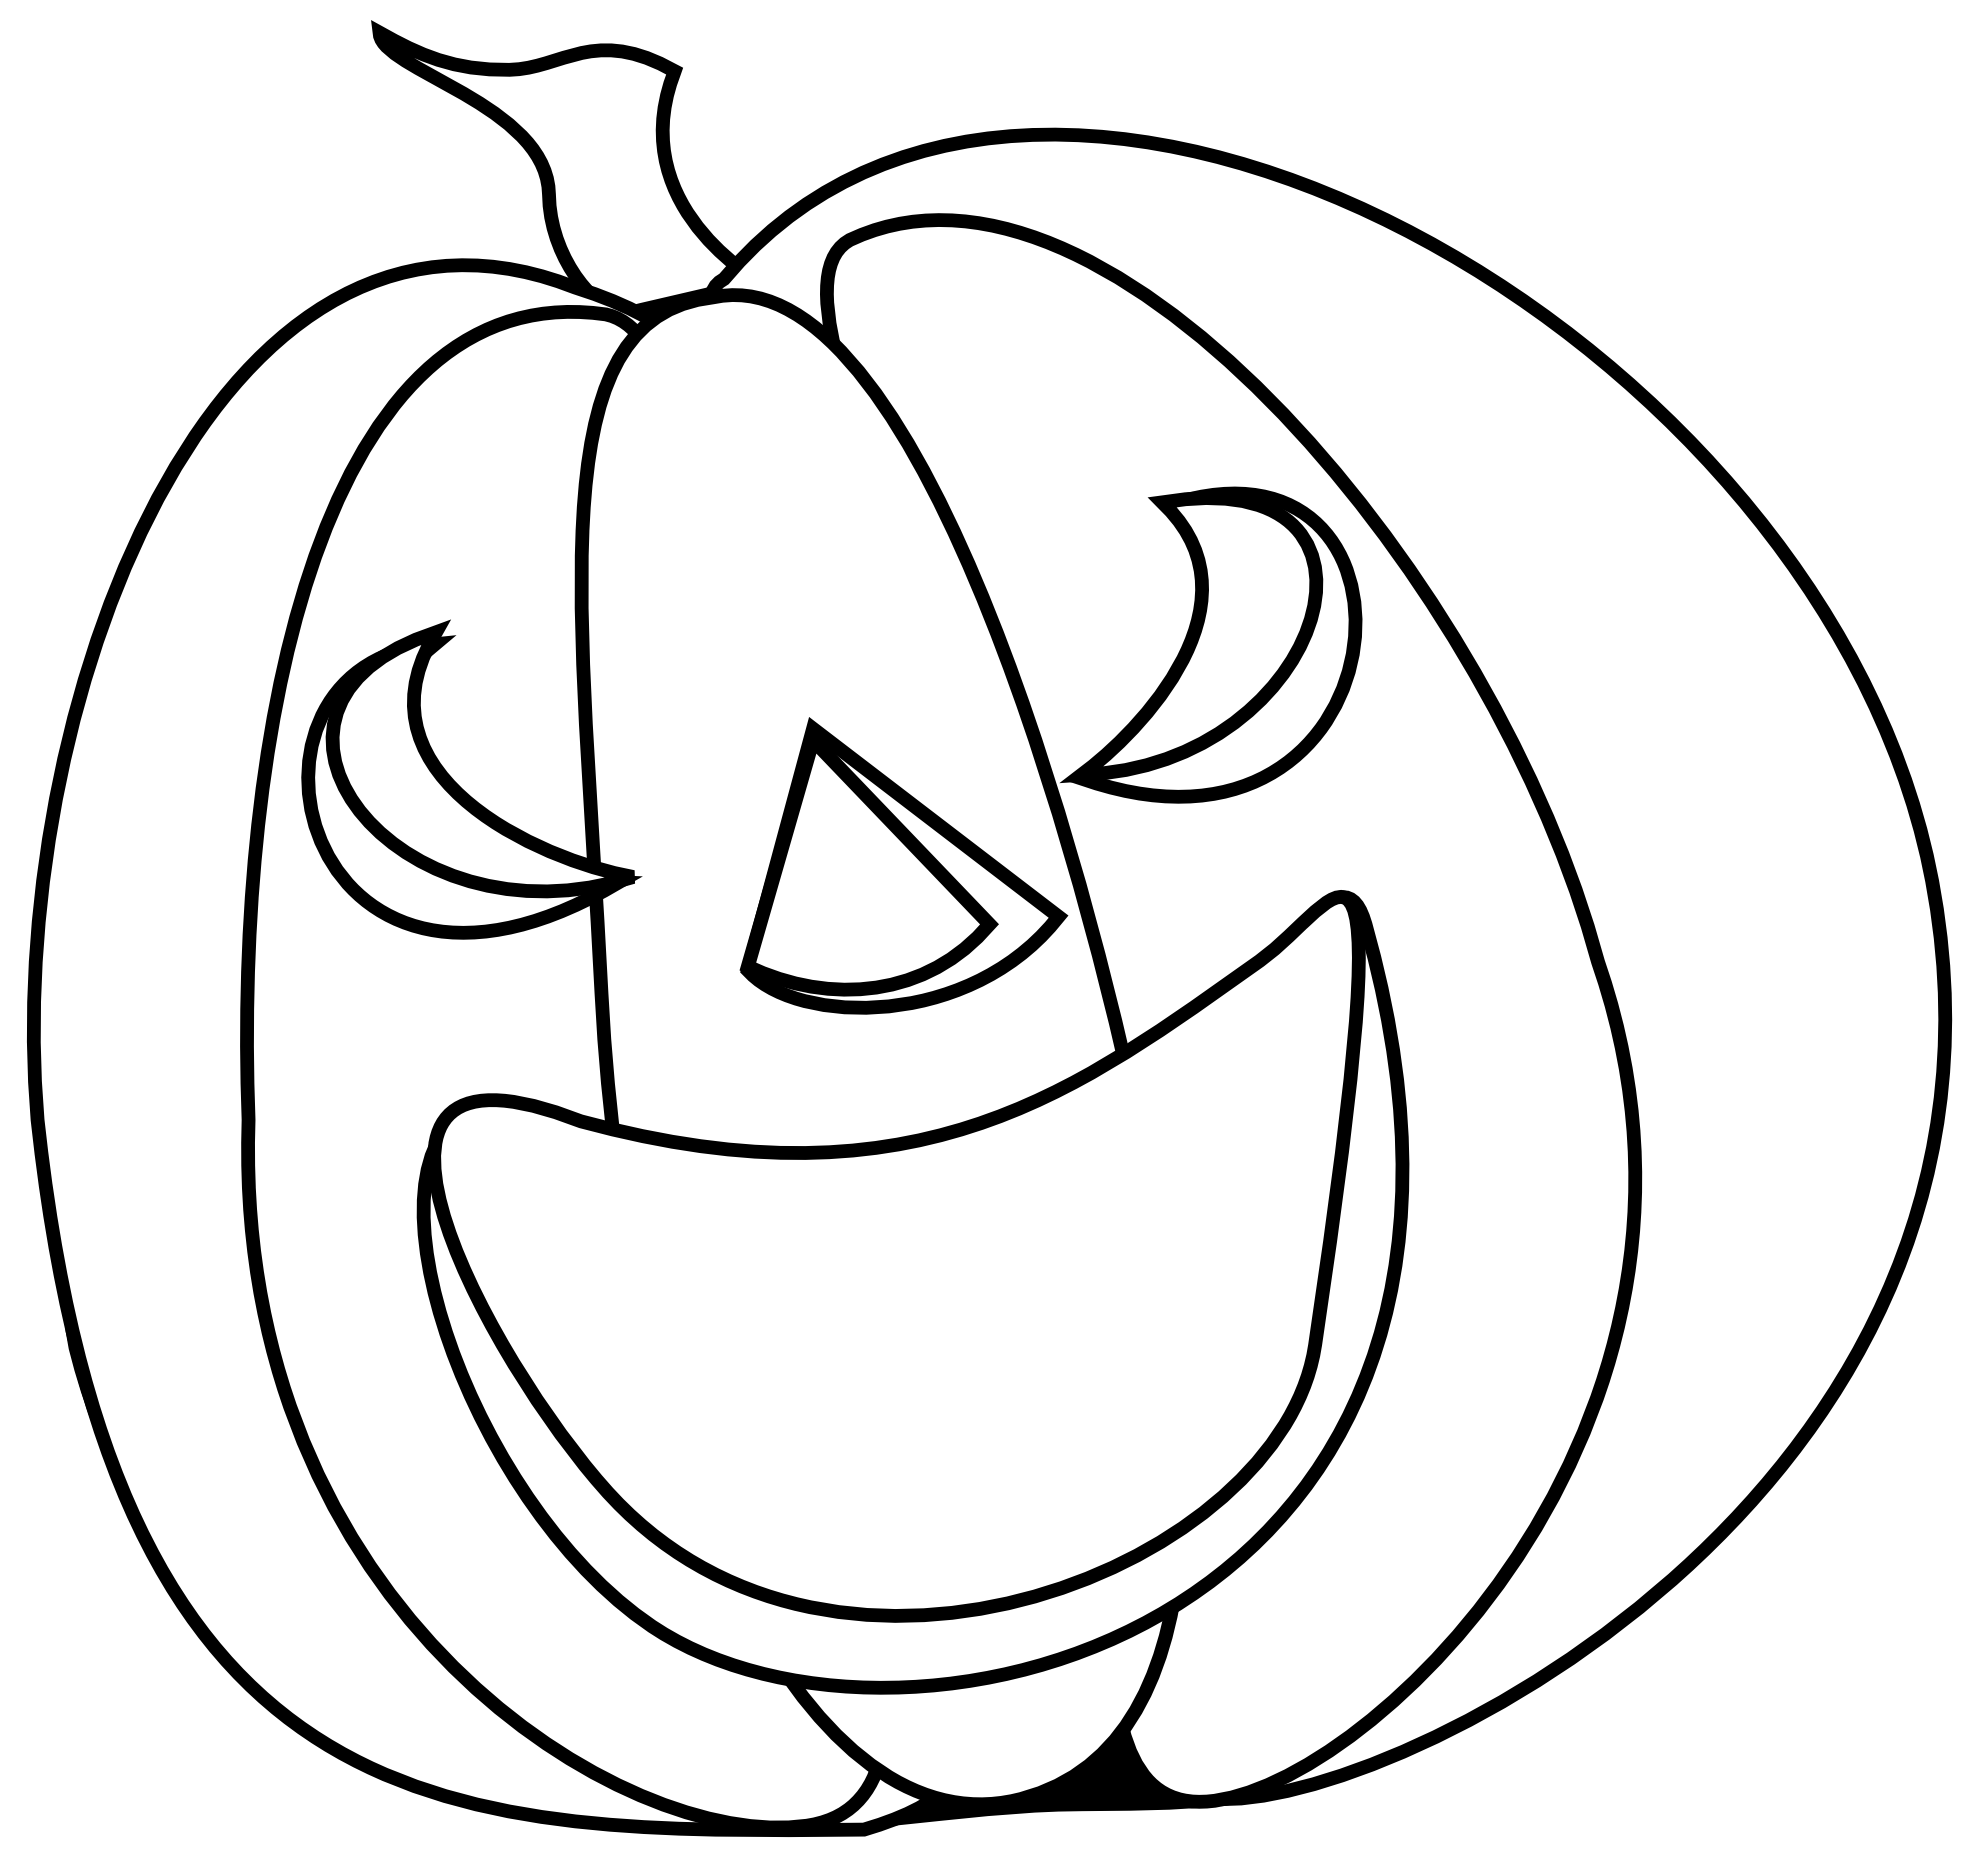 White pumpkin png. Collection of halloween